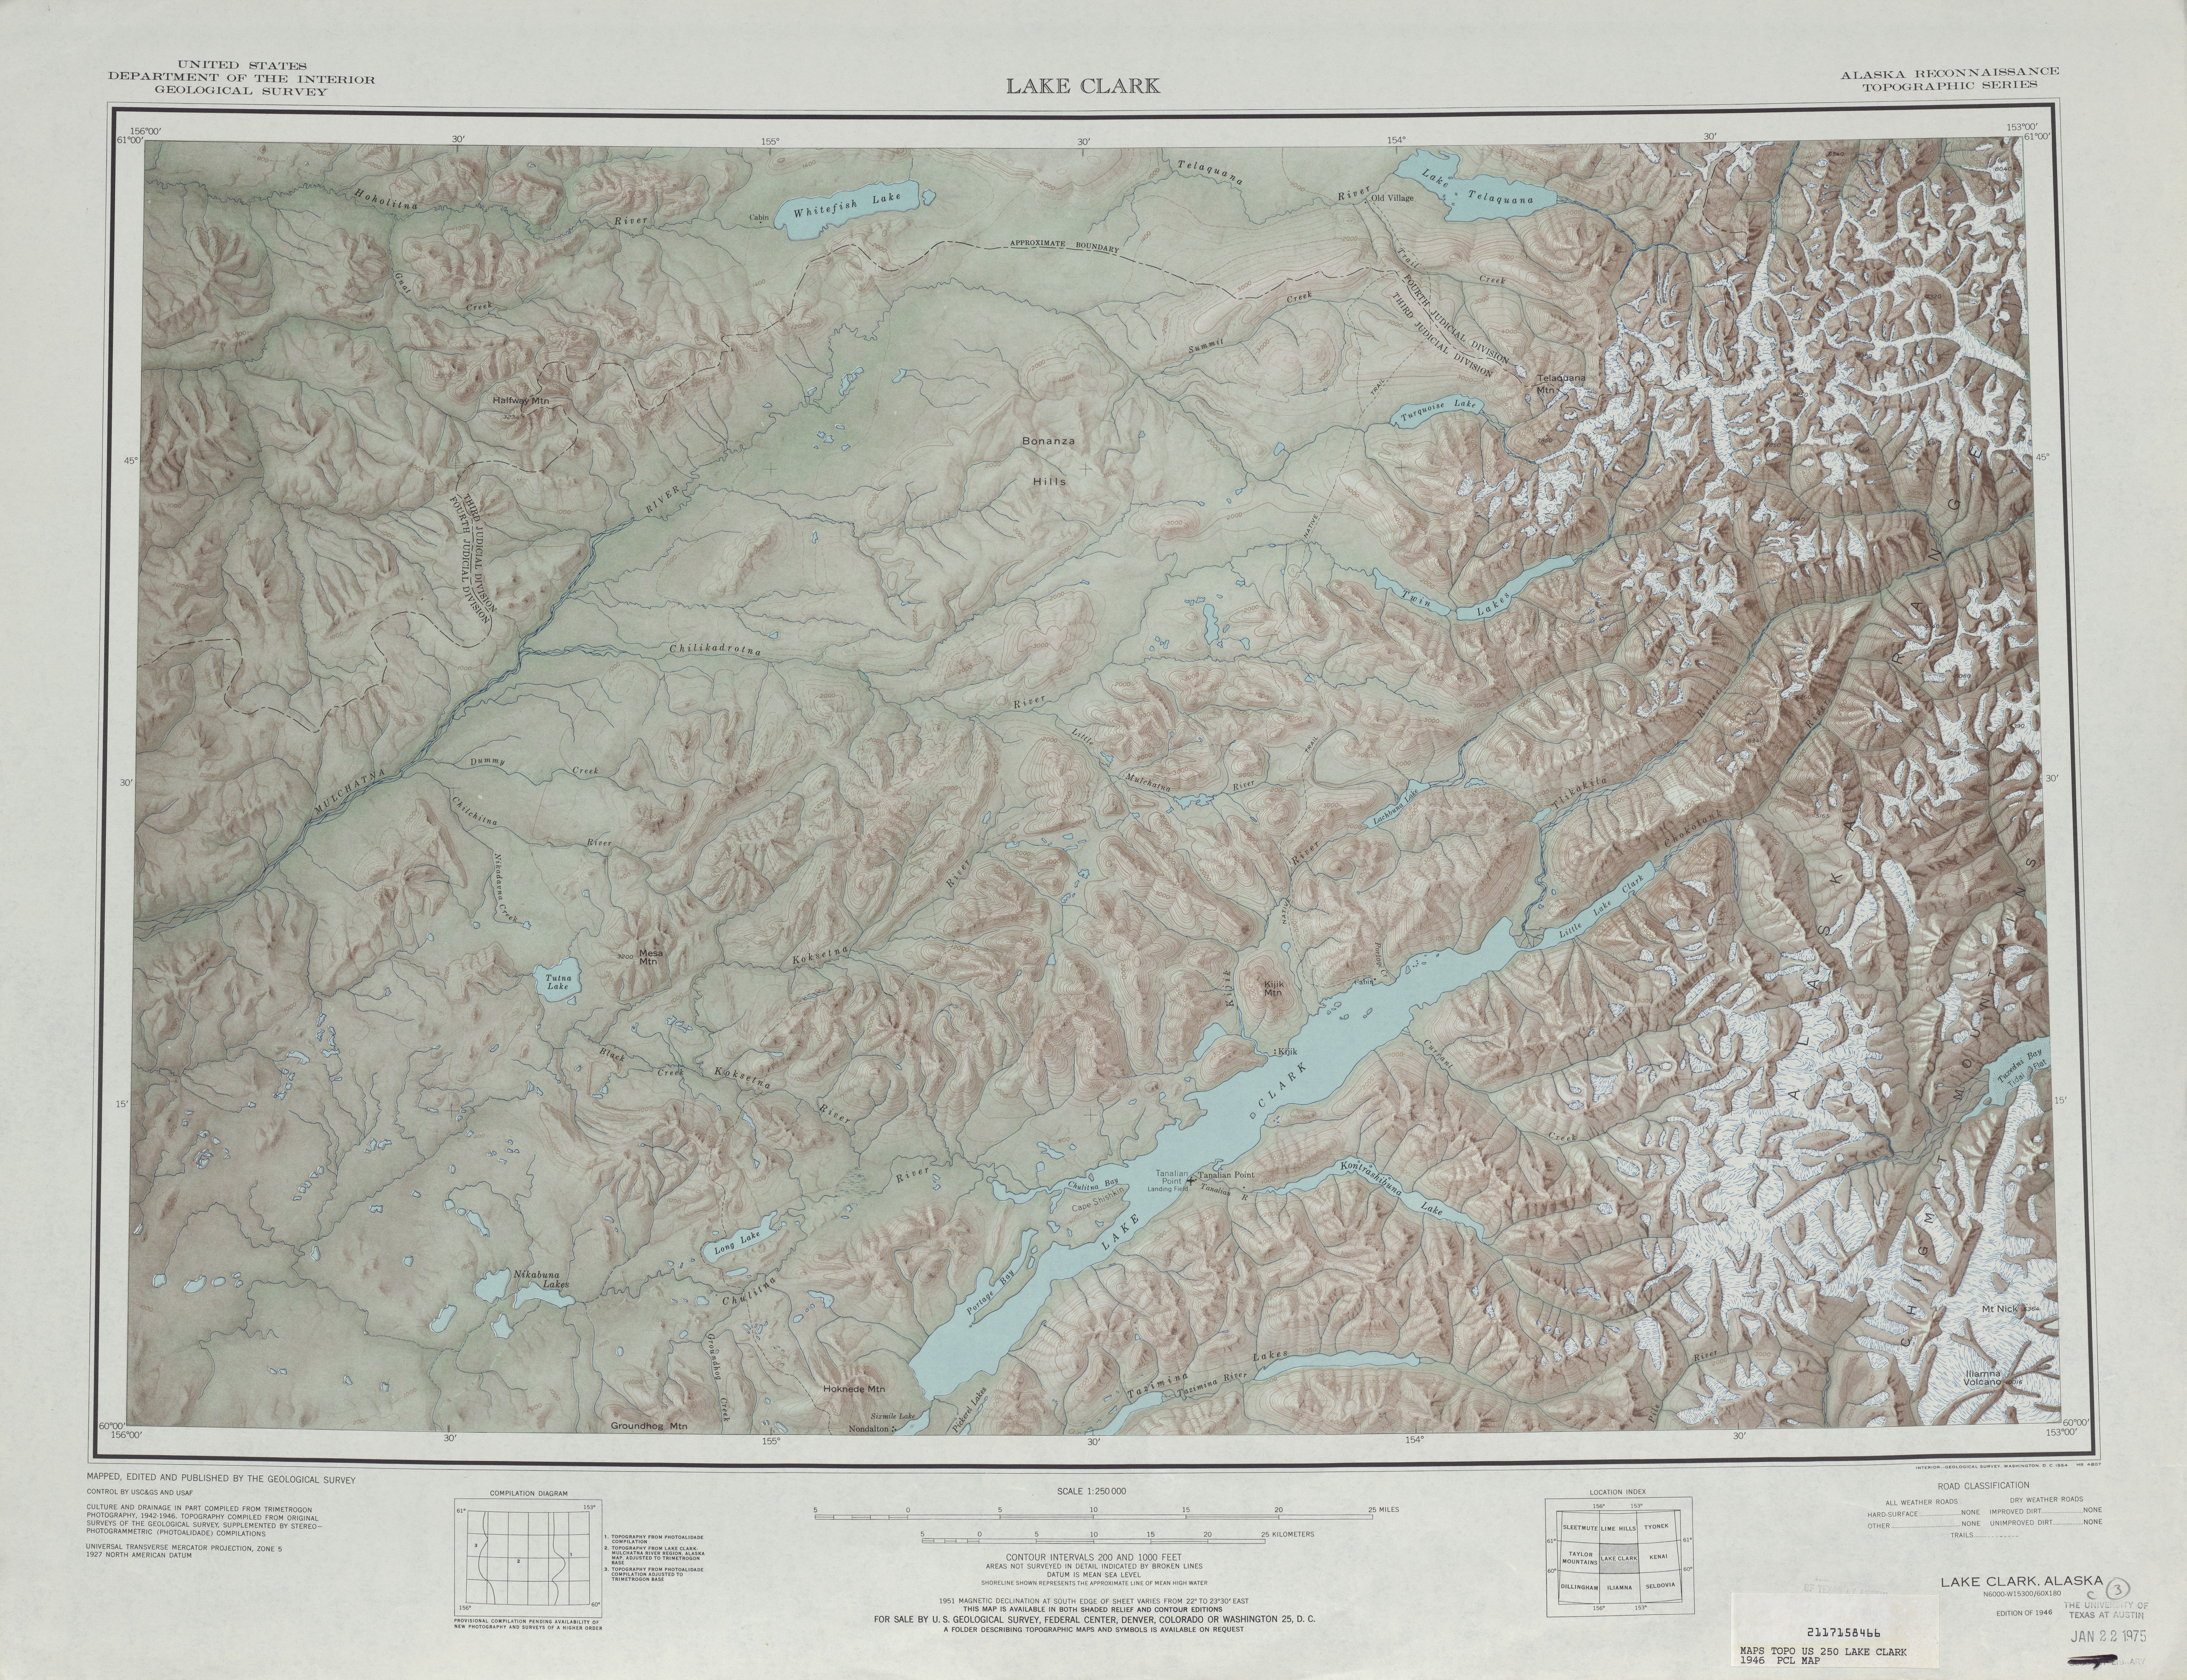 Lake Clark Shaded Relief Map Sheet, United States 1946